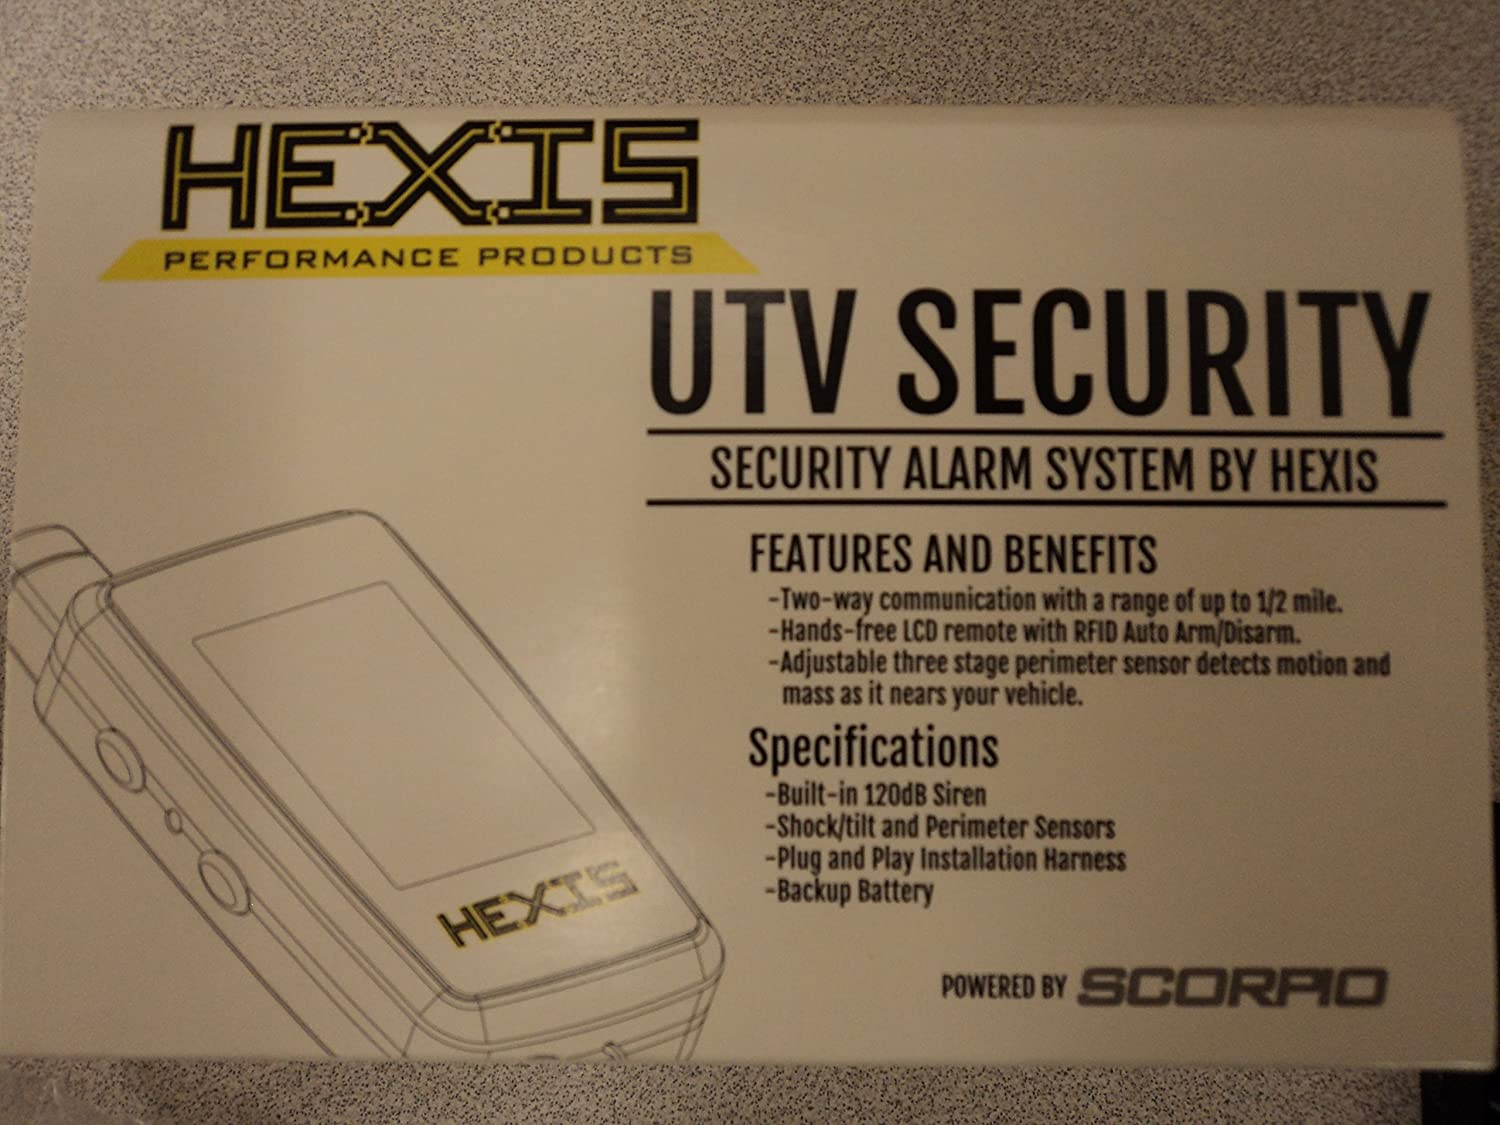 HEXIS RZR UTV SECURITY ALARM SYSTEM